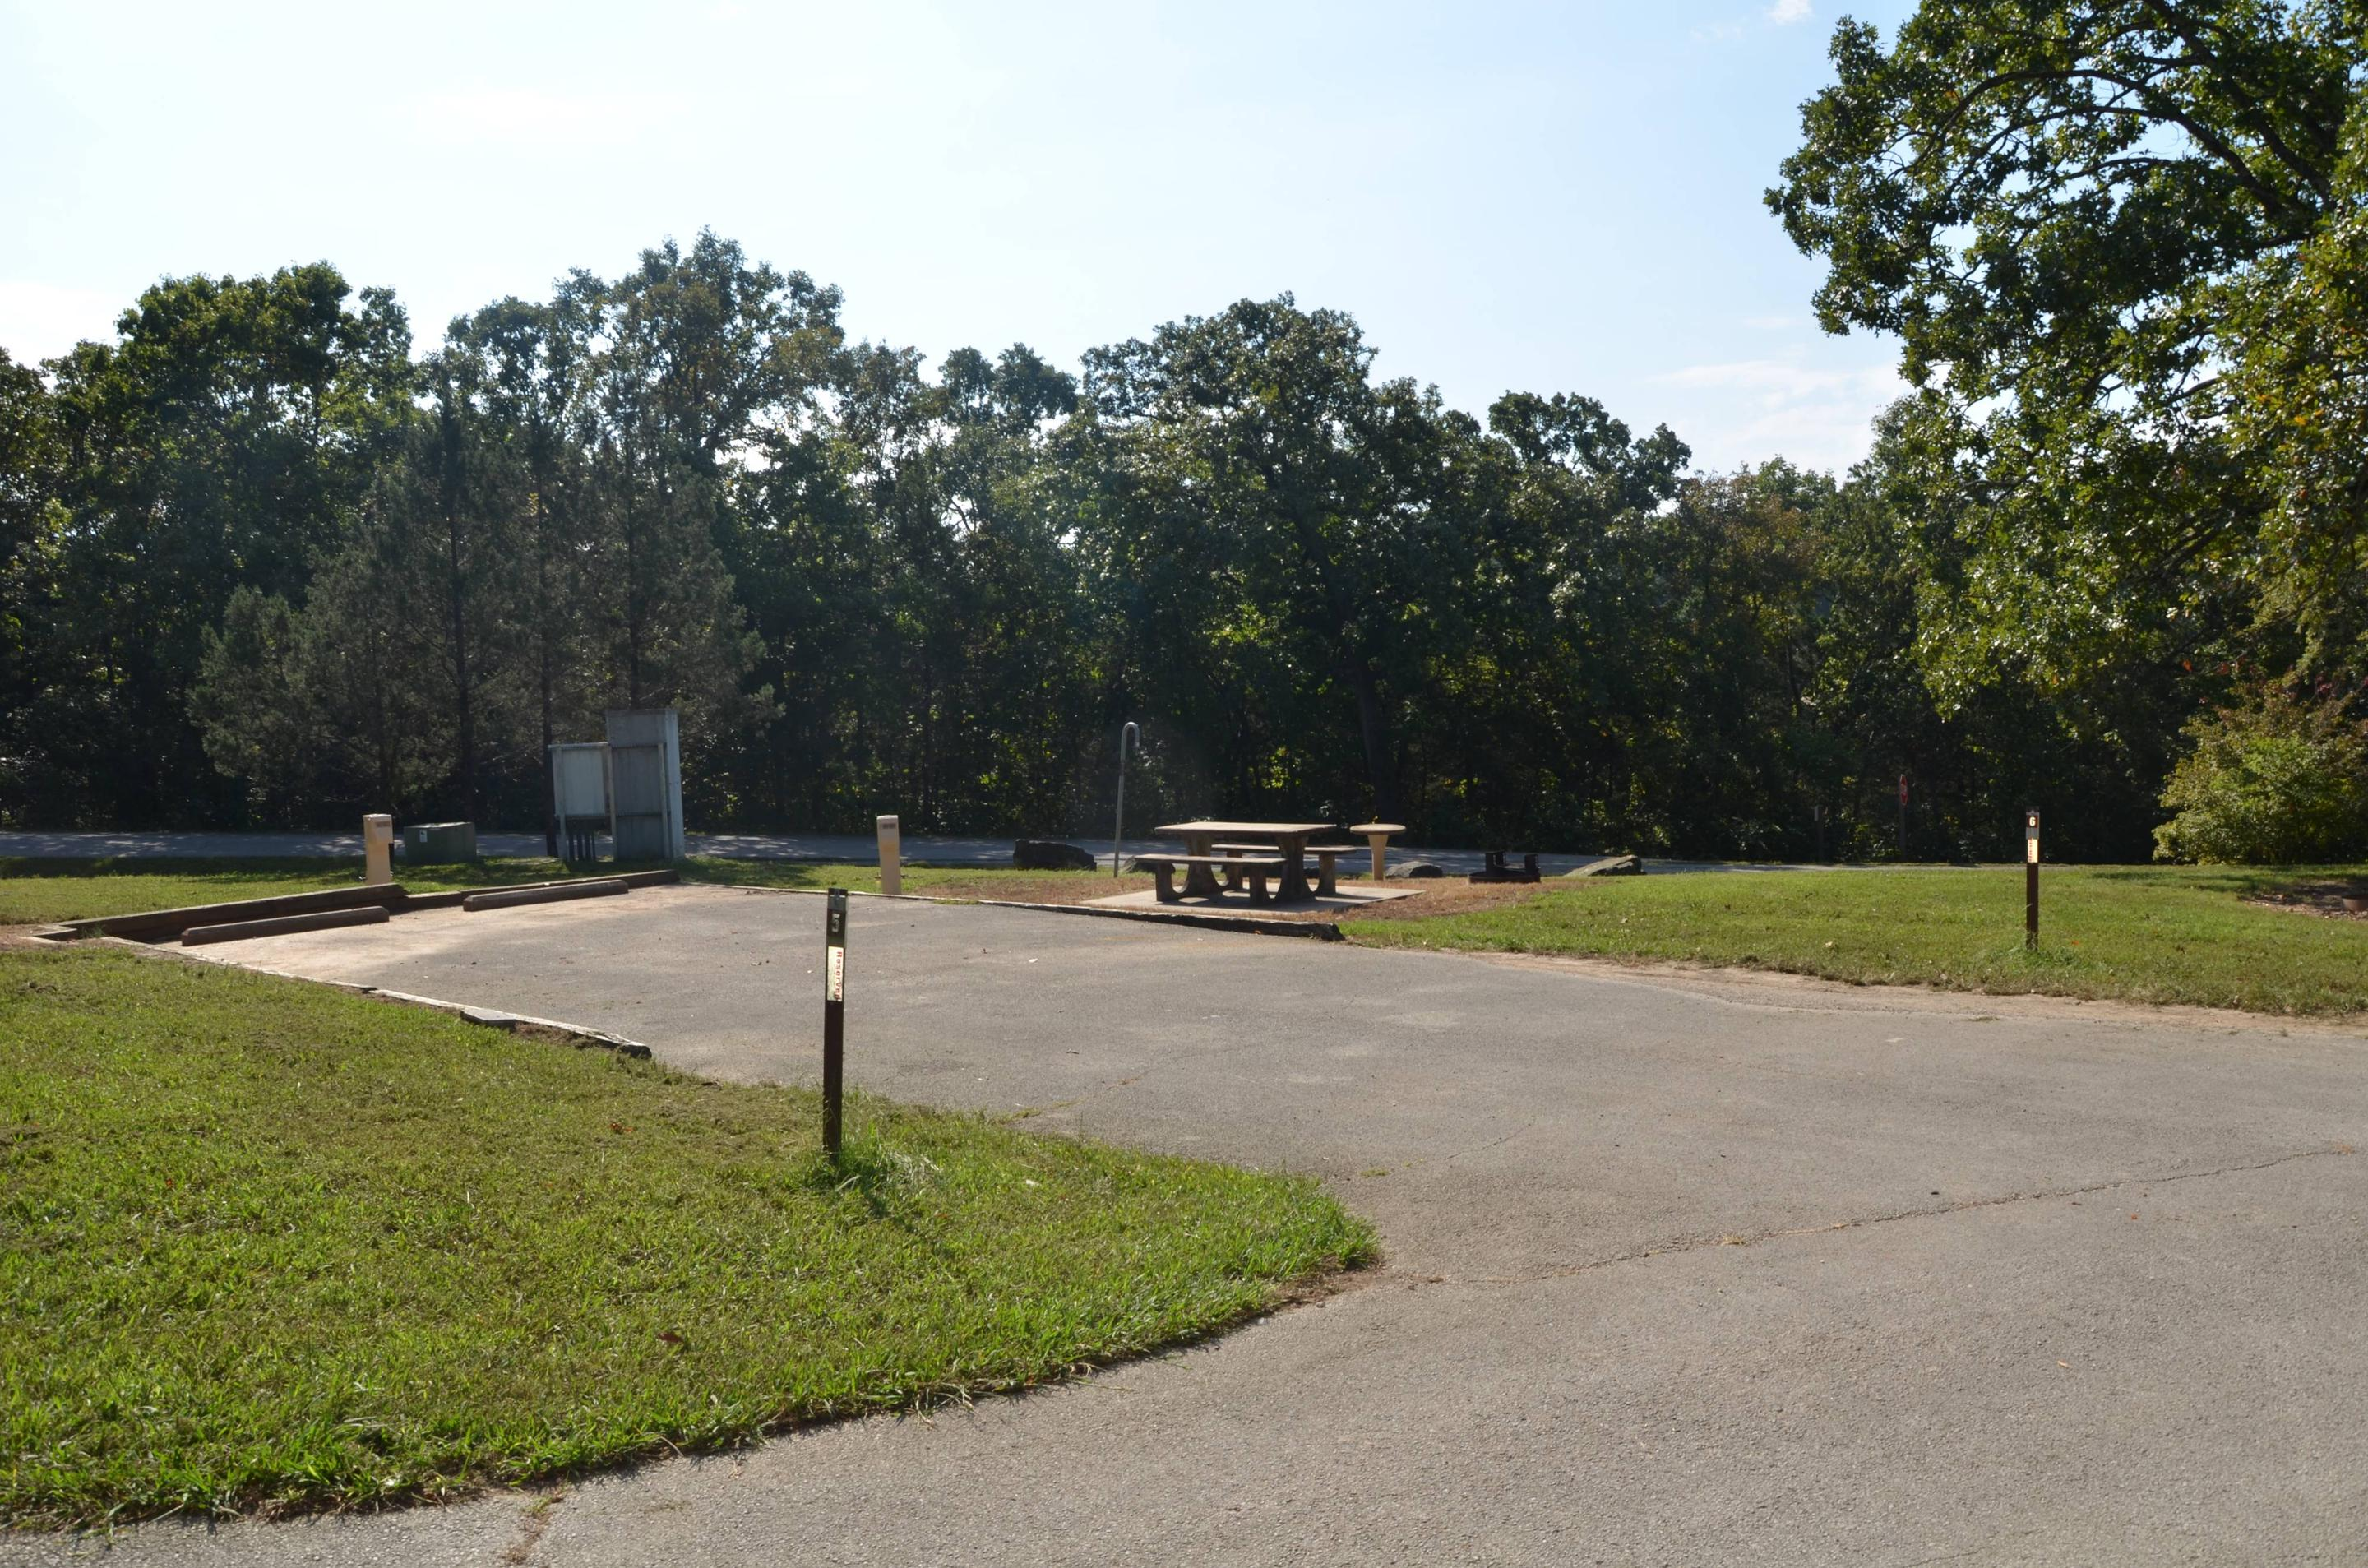 Aunts Creeksite 6 shares a parking area with site 5.